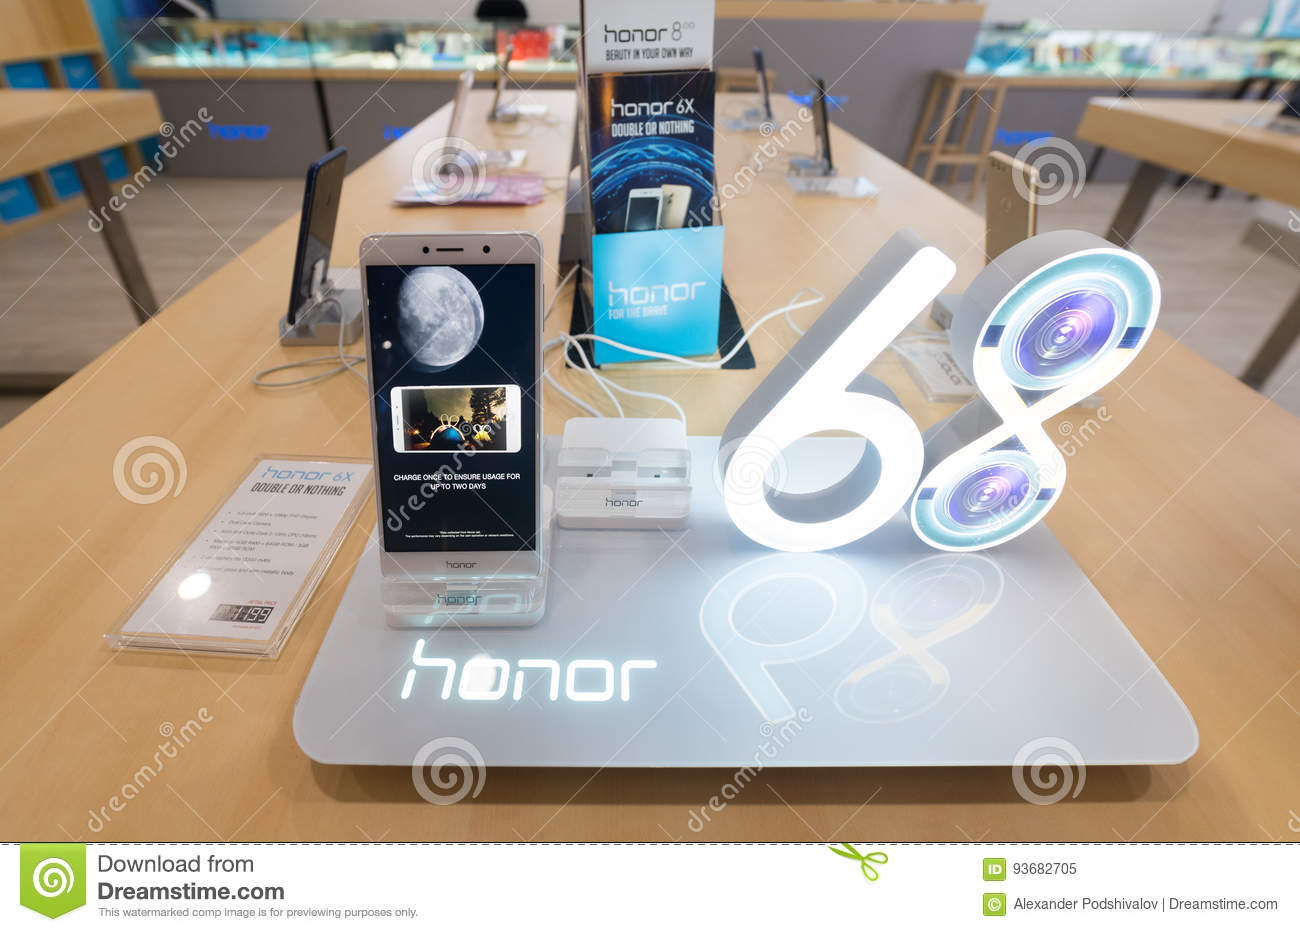 Honor 6x Smartphone For Sale Editorial Image - Image of